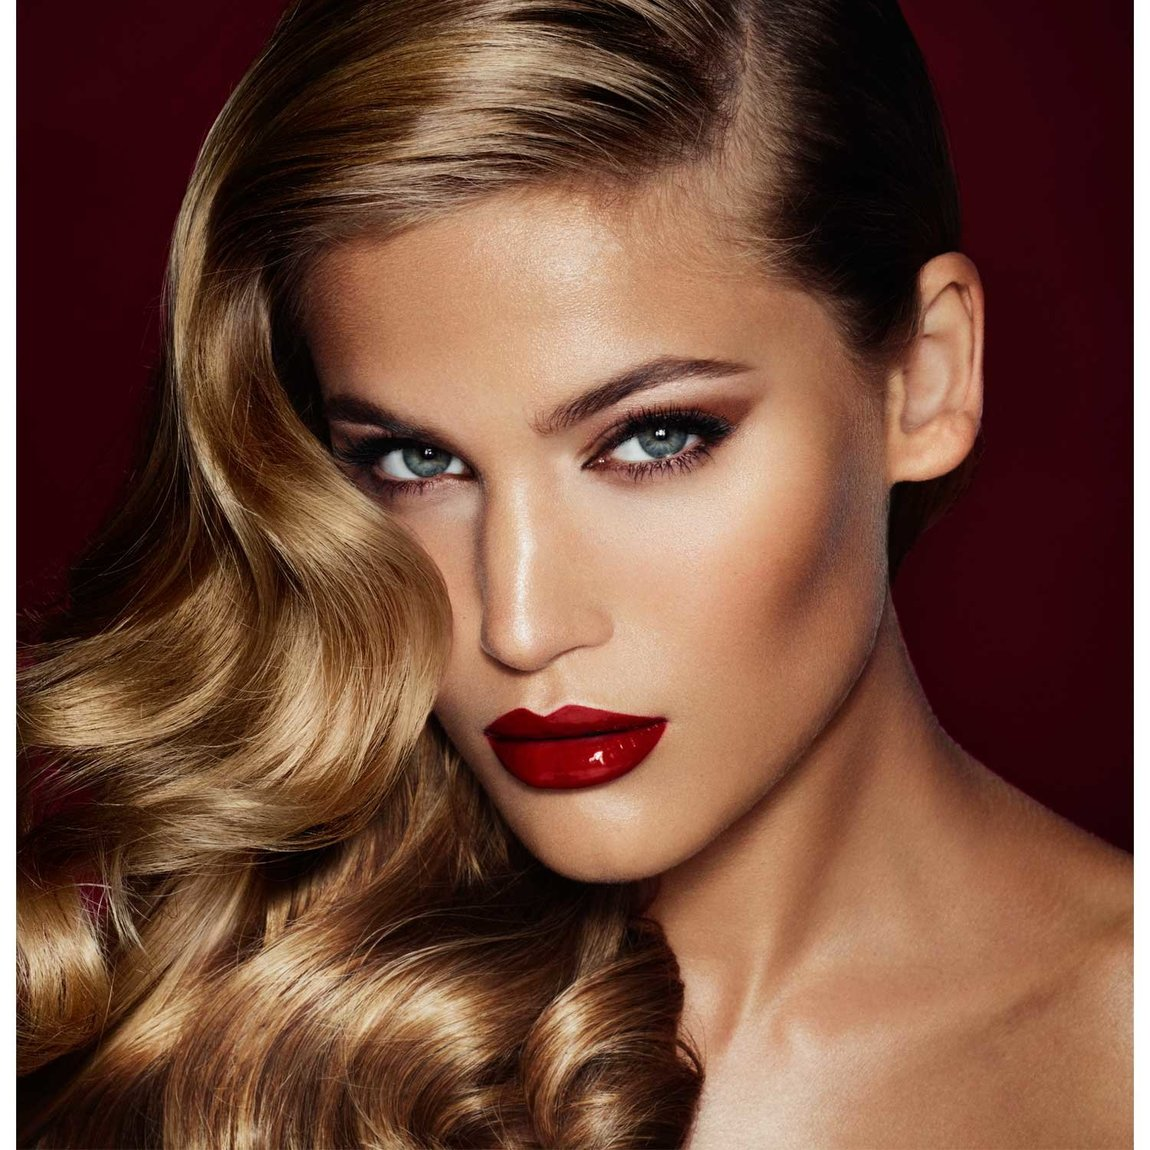 Charlotte Tilbury Get the Look The Bombshell product smear.